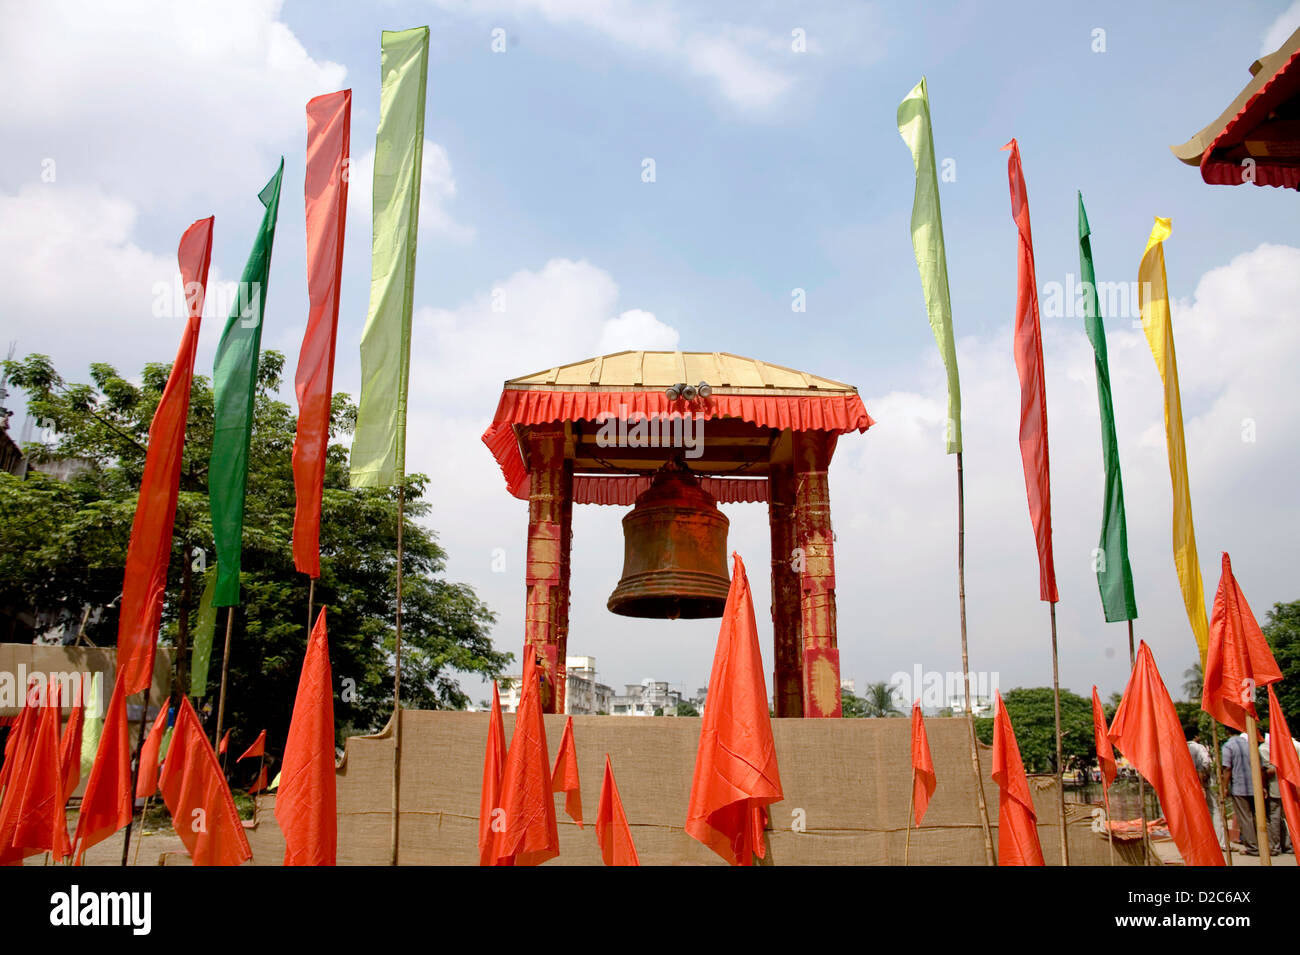 Pandal stock photos pandal stock images alamy pagoda like pandal for durga pooja on dussera dusera vijayadasami festival dumdum calcutta now thecheapjerseys Images